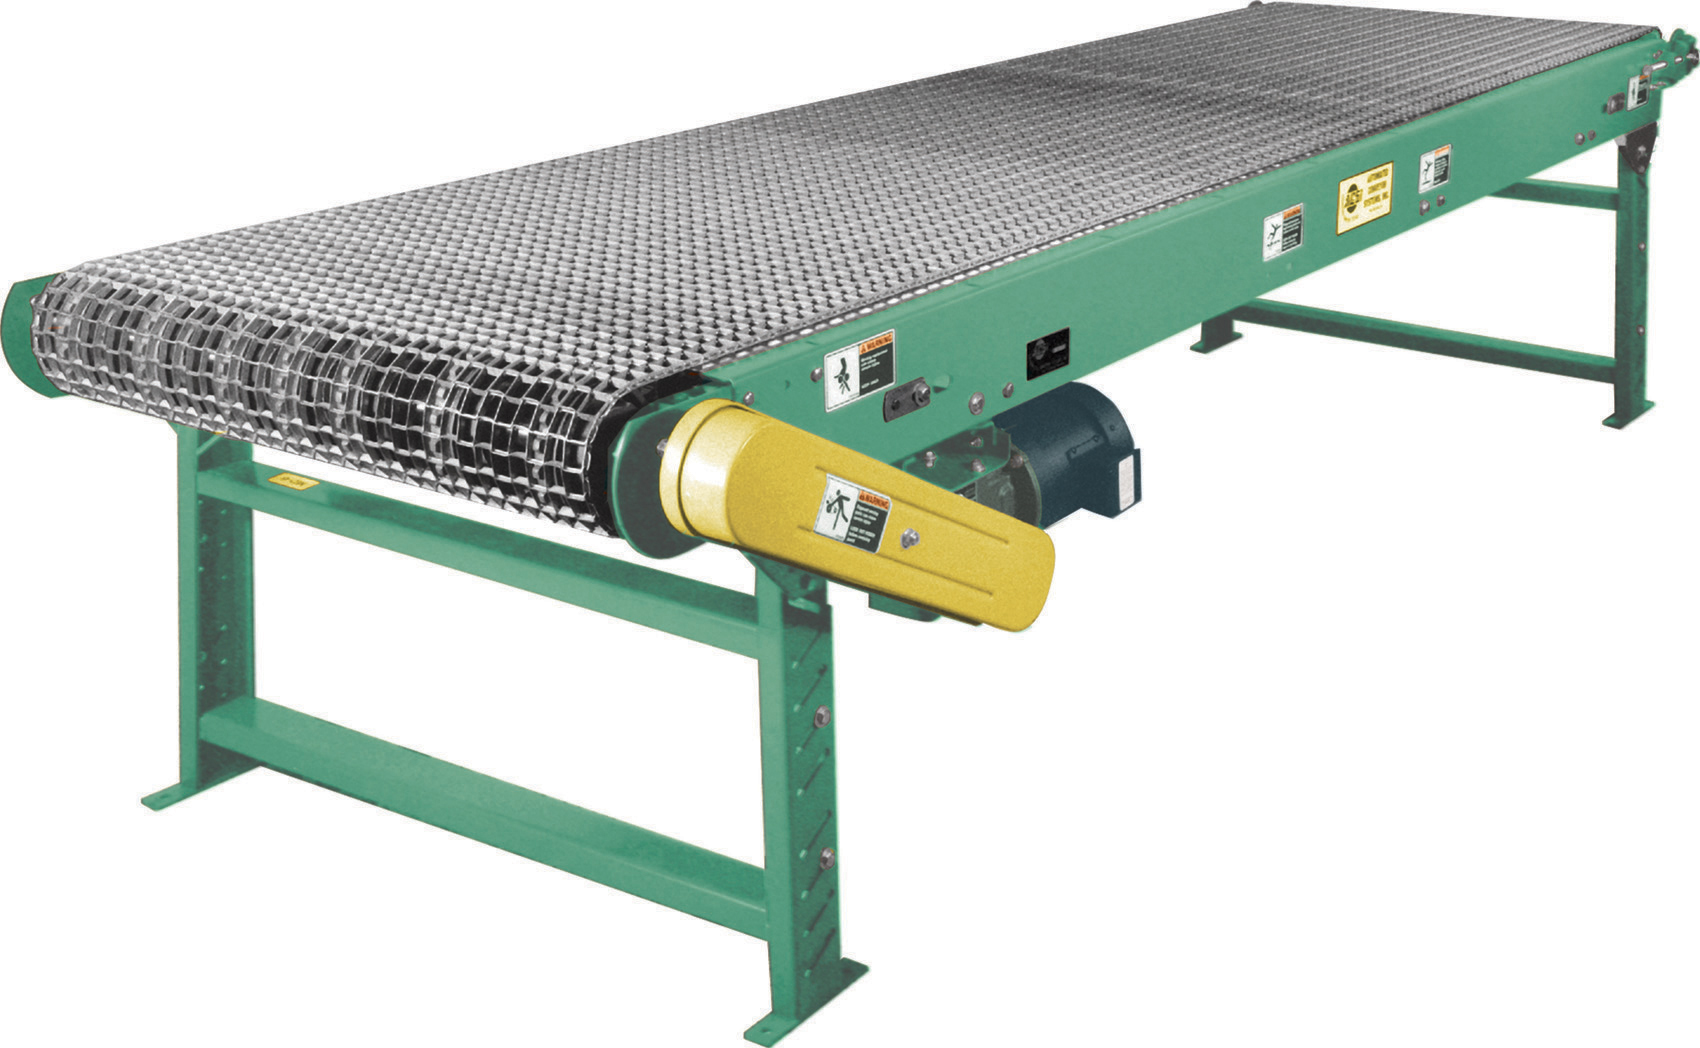 conveyor belt Find a large selection of conveyor belts for a variety of applications ranging from light duty to high performance we also stock staple belt lacing strips that speed installation of replacement conveyor belts.